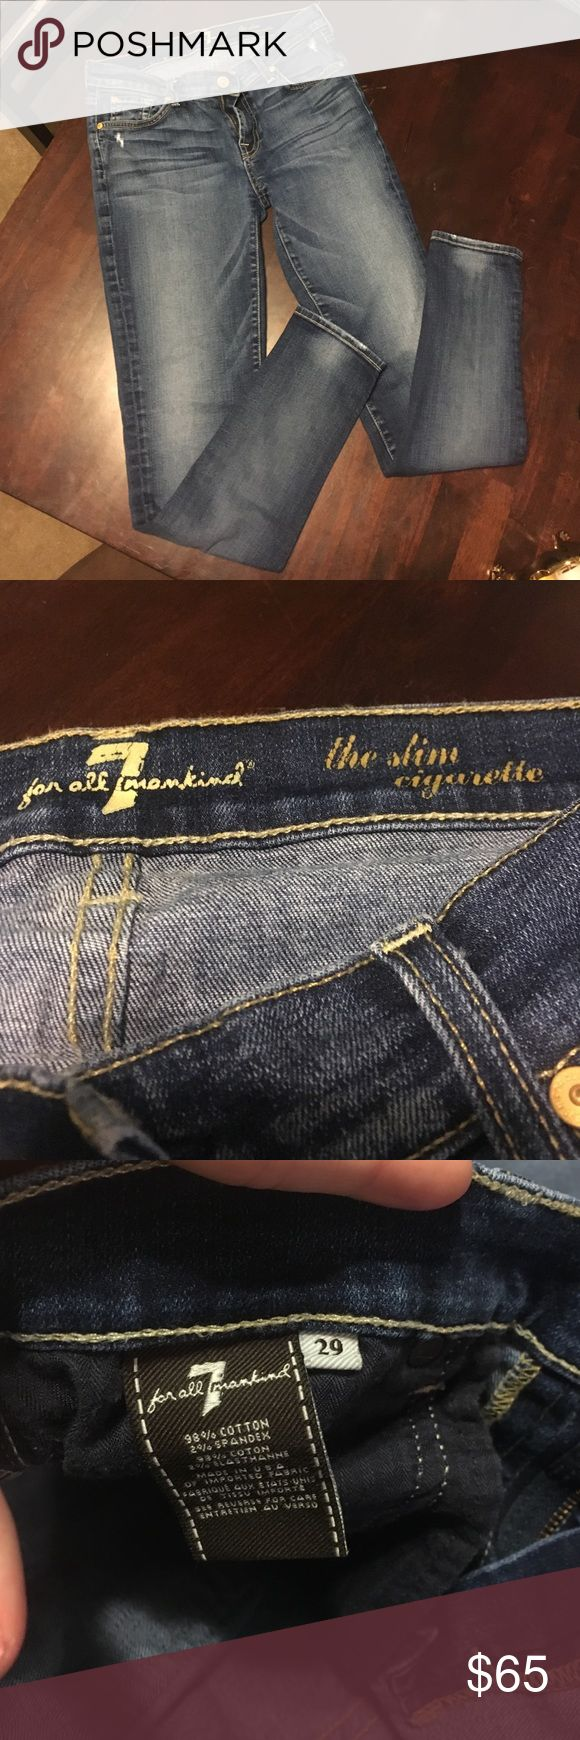 7 for all mankind slim cigarette jeans! 7 for all mankind slim cigarette jeans! Really really cute jeans!! Size 29 7 For All Mankind Jeans Skinny